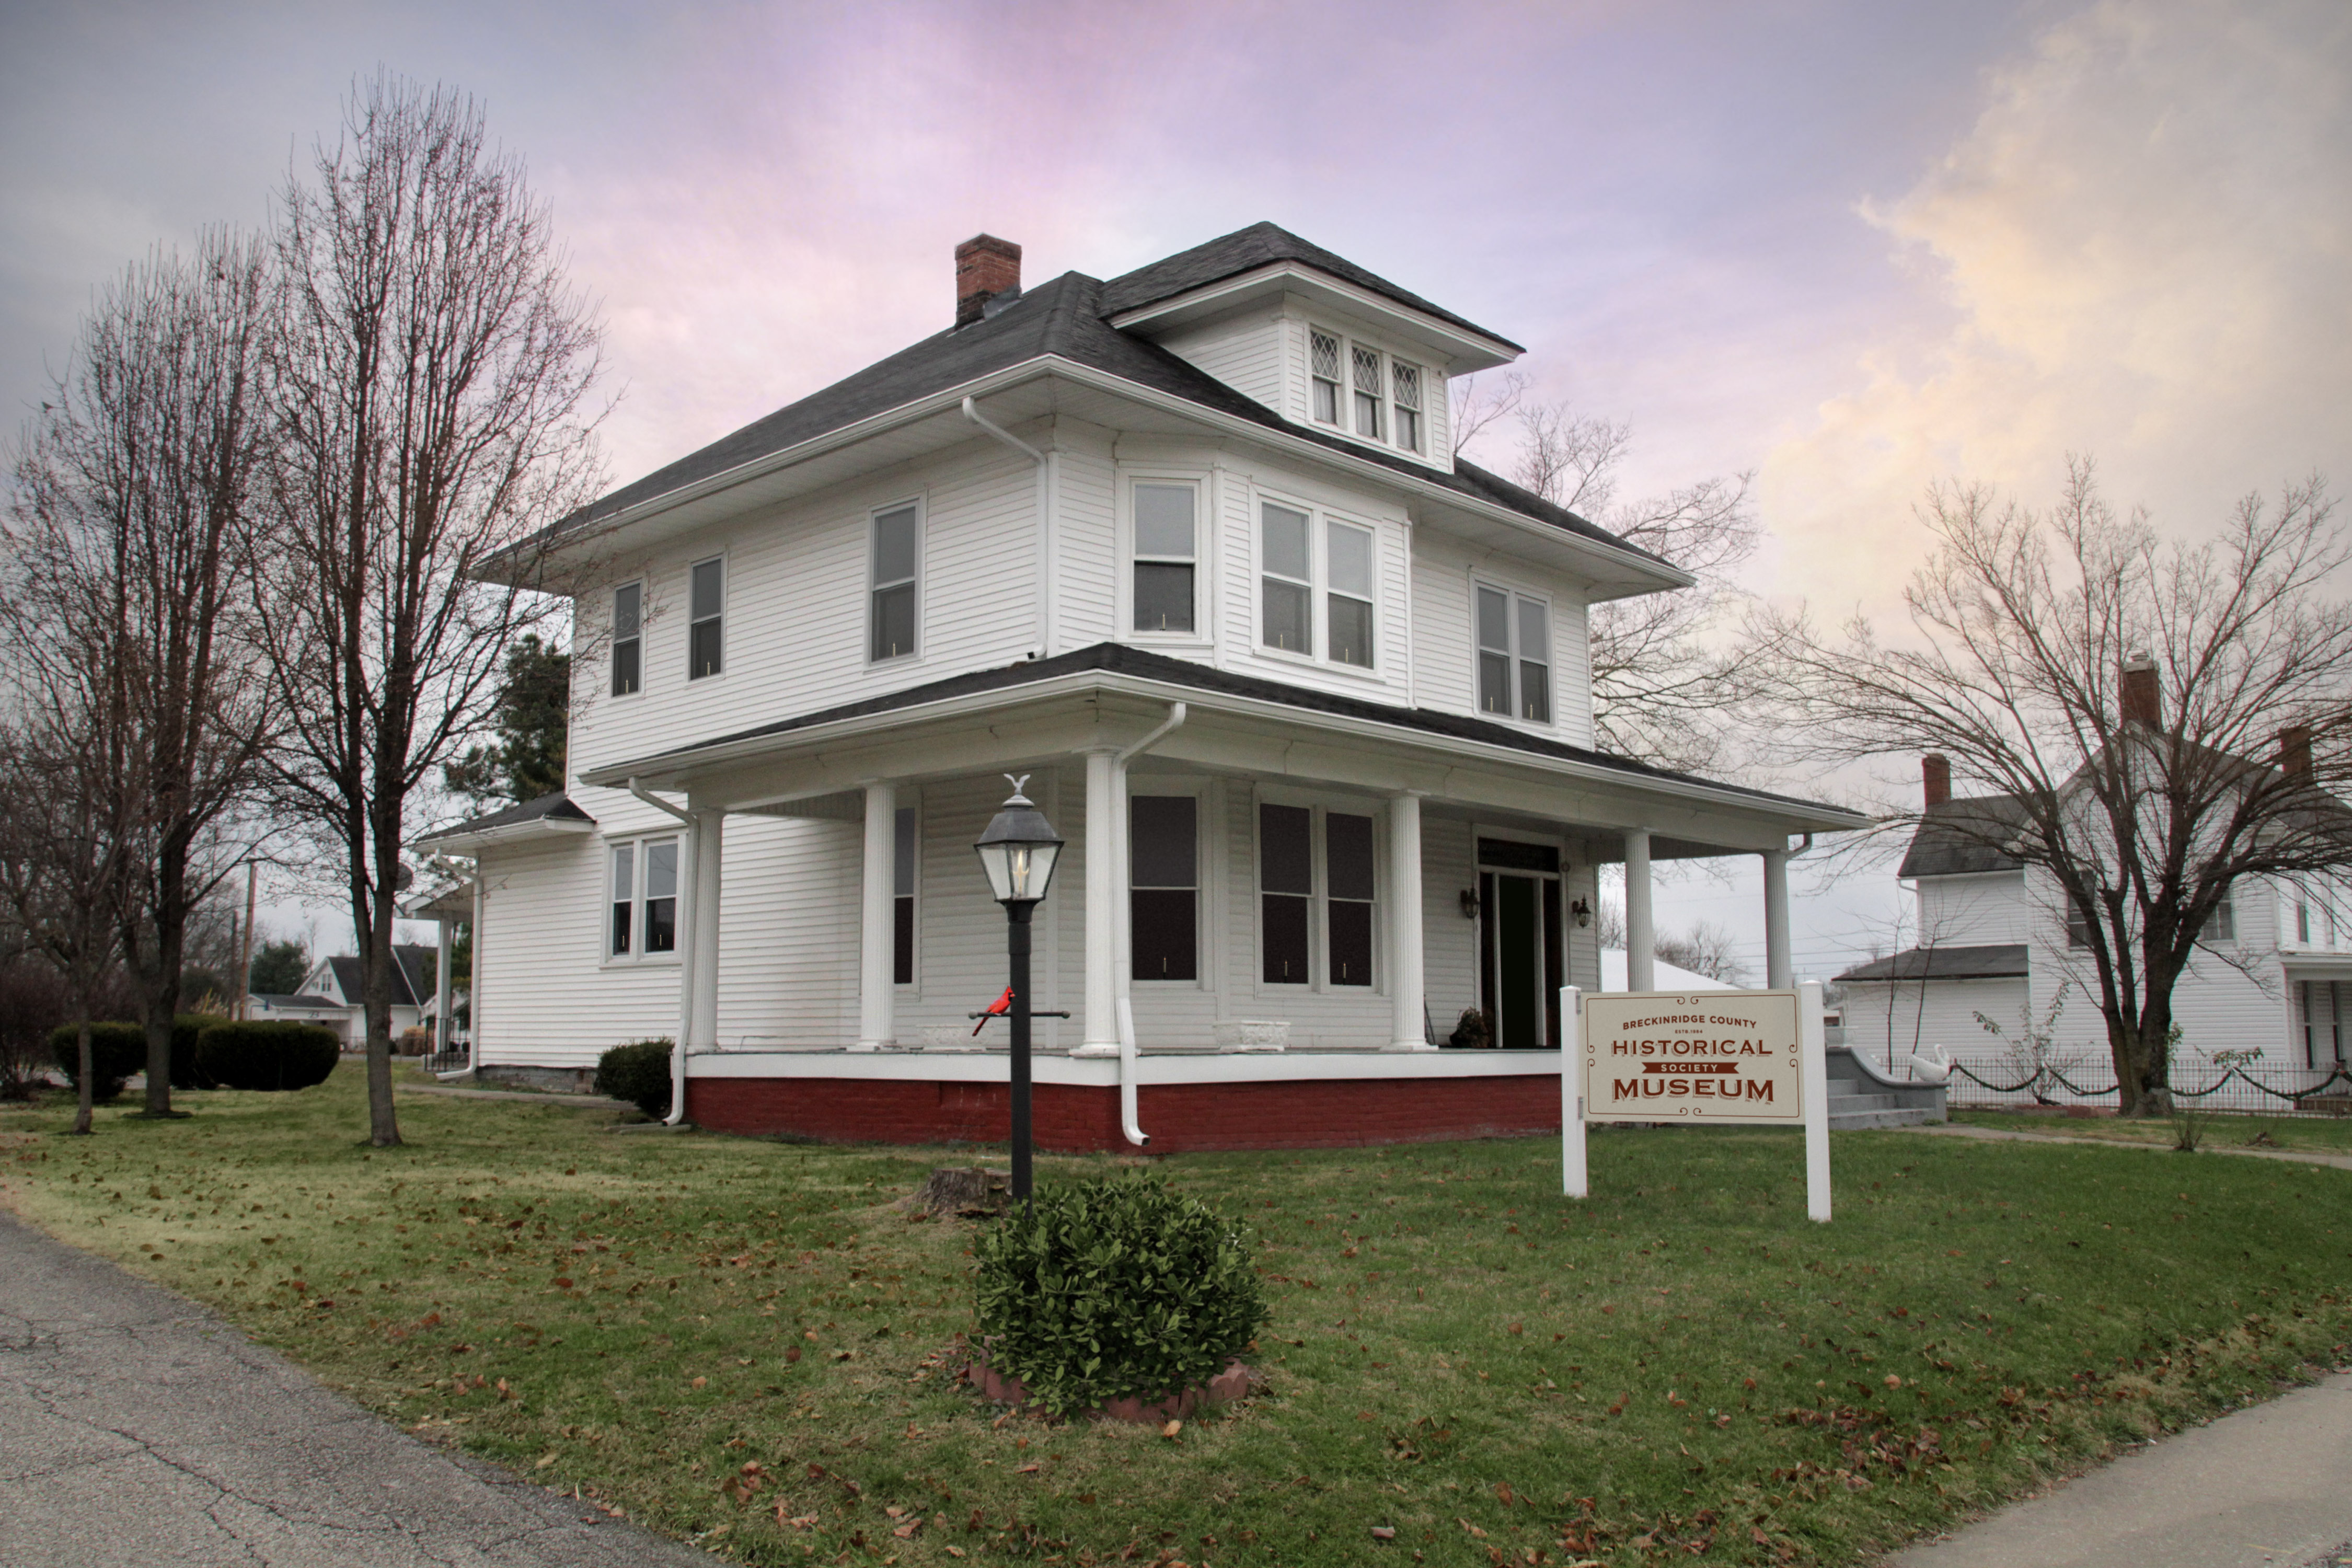 New home of the Breckinridge County Historical Society Museum, purchased on June 20, 2011